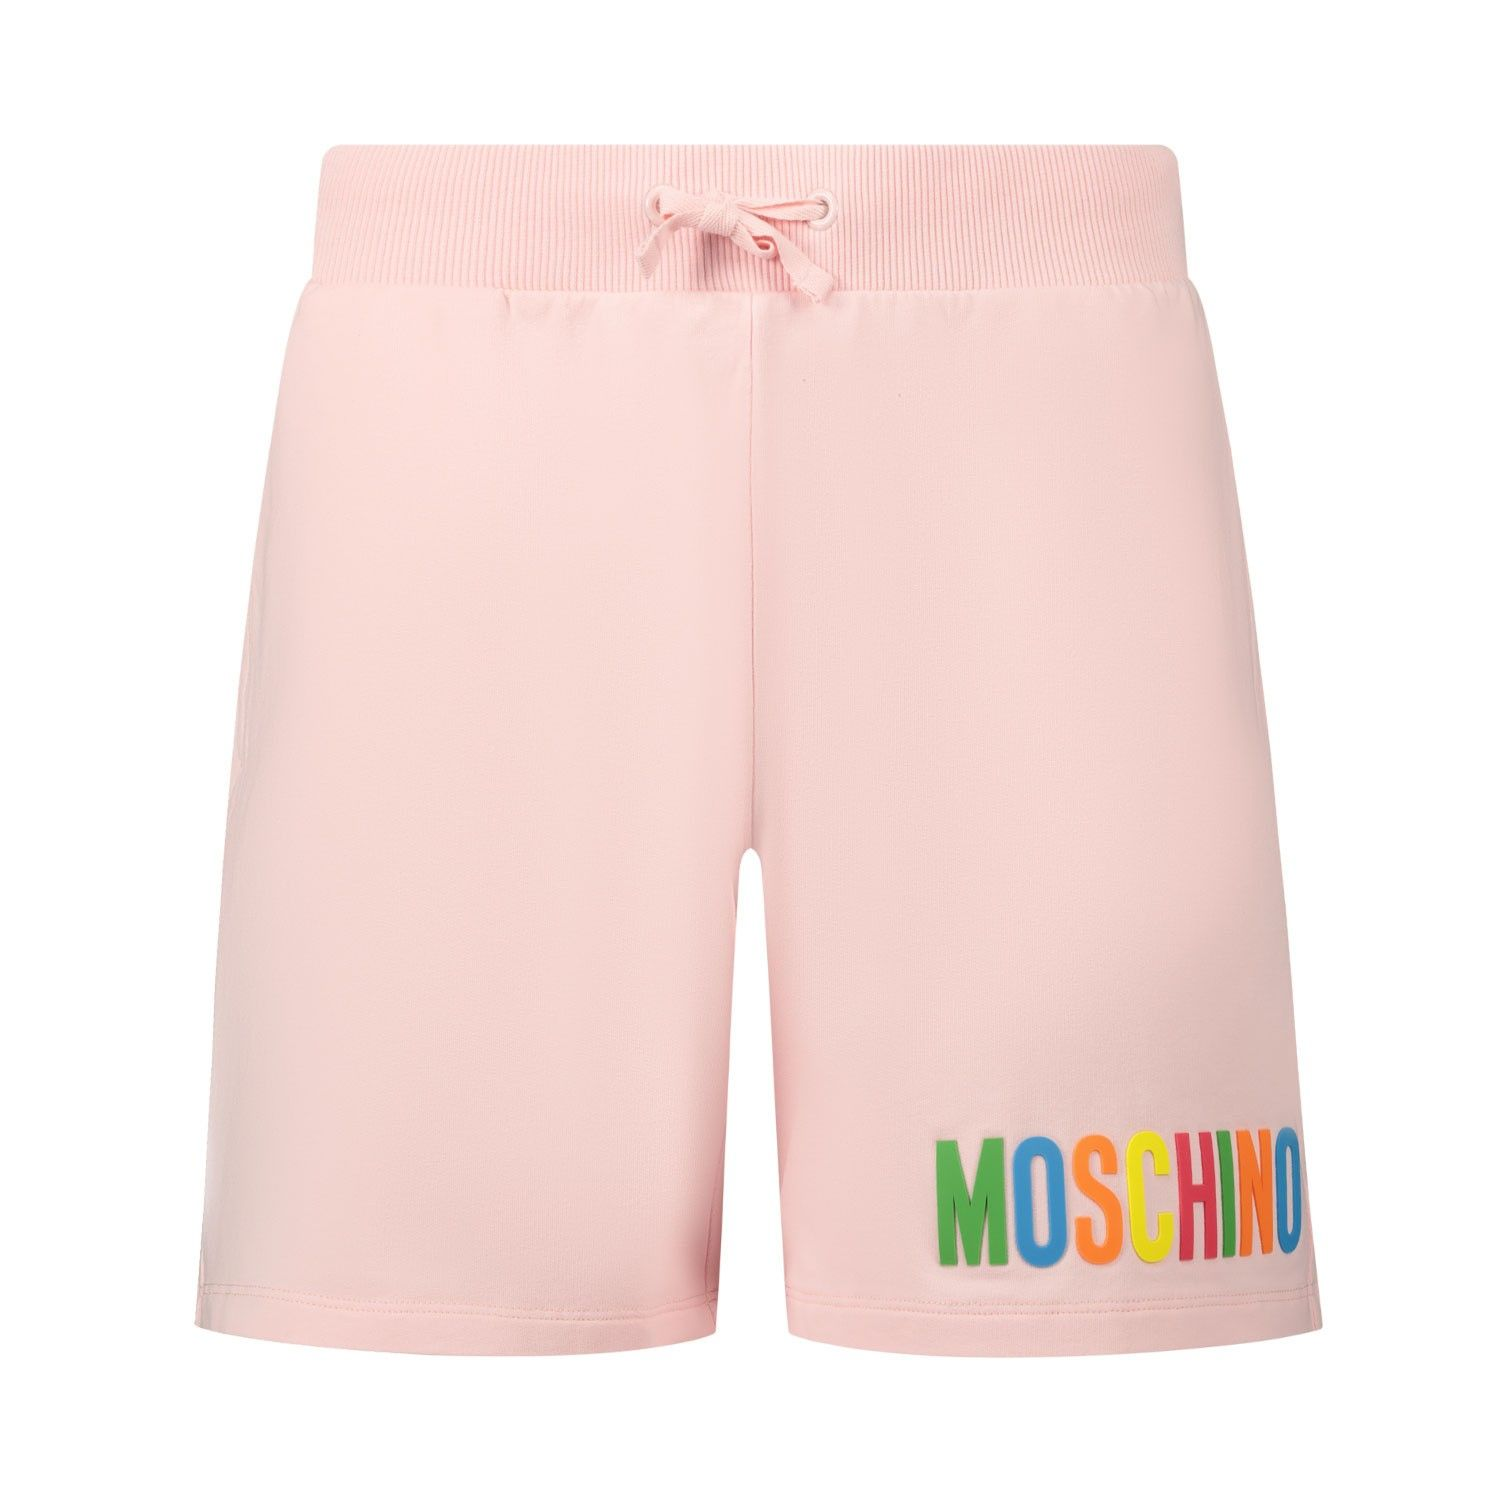 Picture of Moschino HAQ002 kids shorts light pink